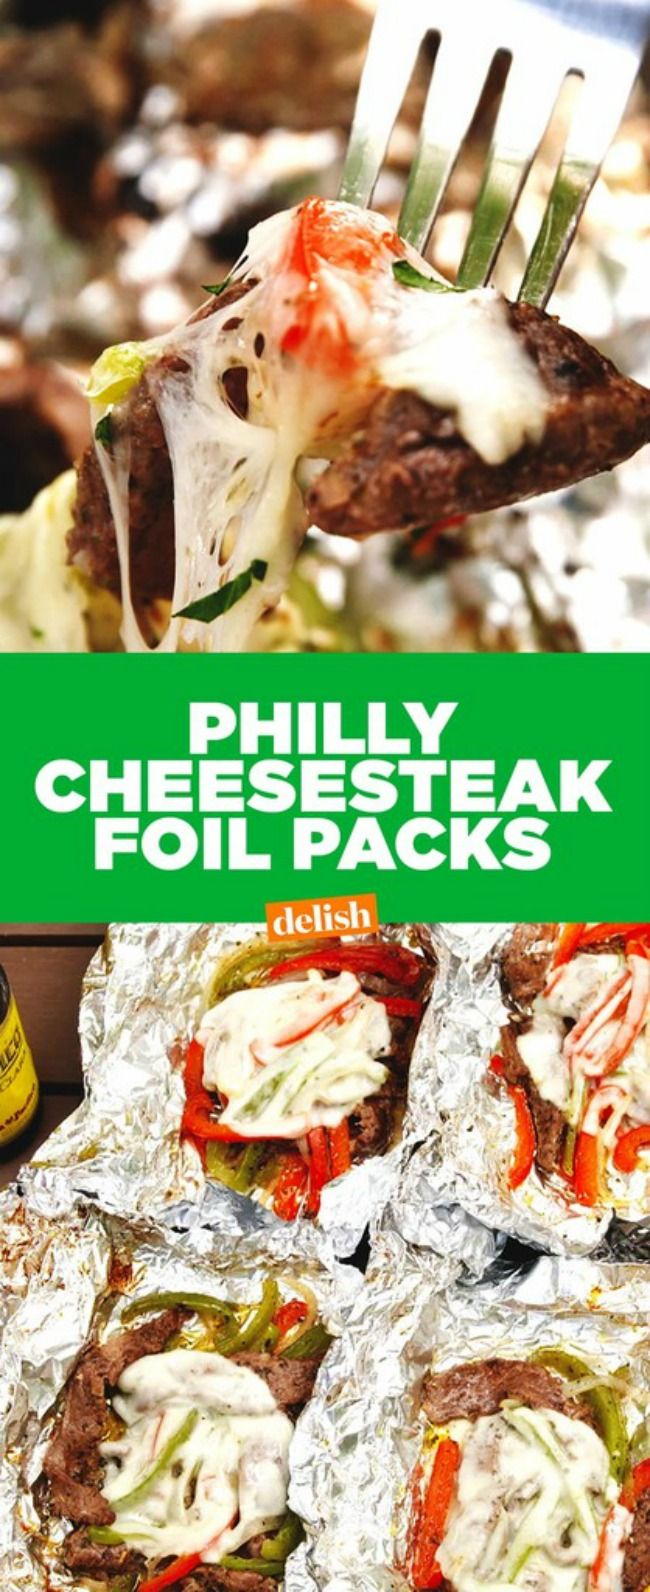 Philly Cheesesteak Foil Packs #phillycheesesteak #foilpacket #dinnerrecipes #camping